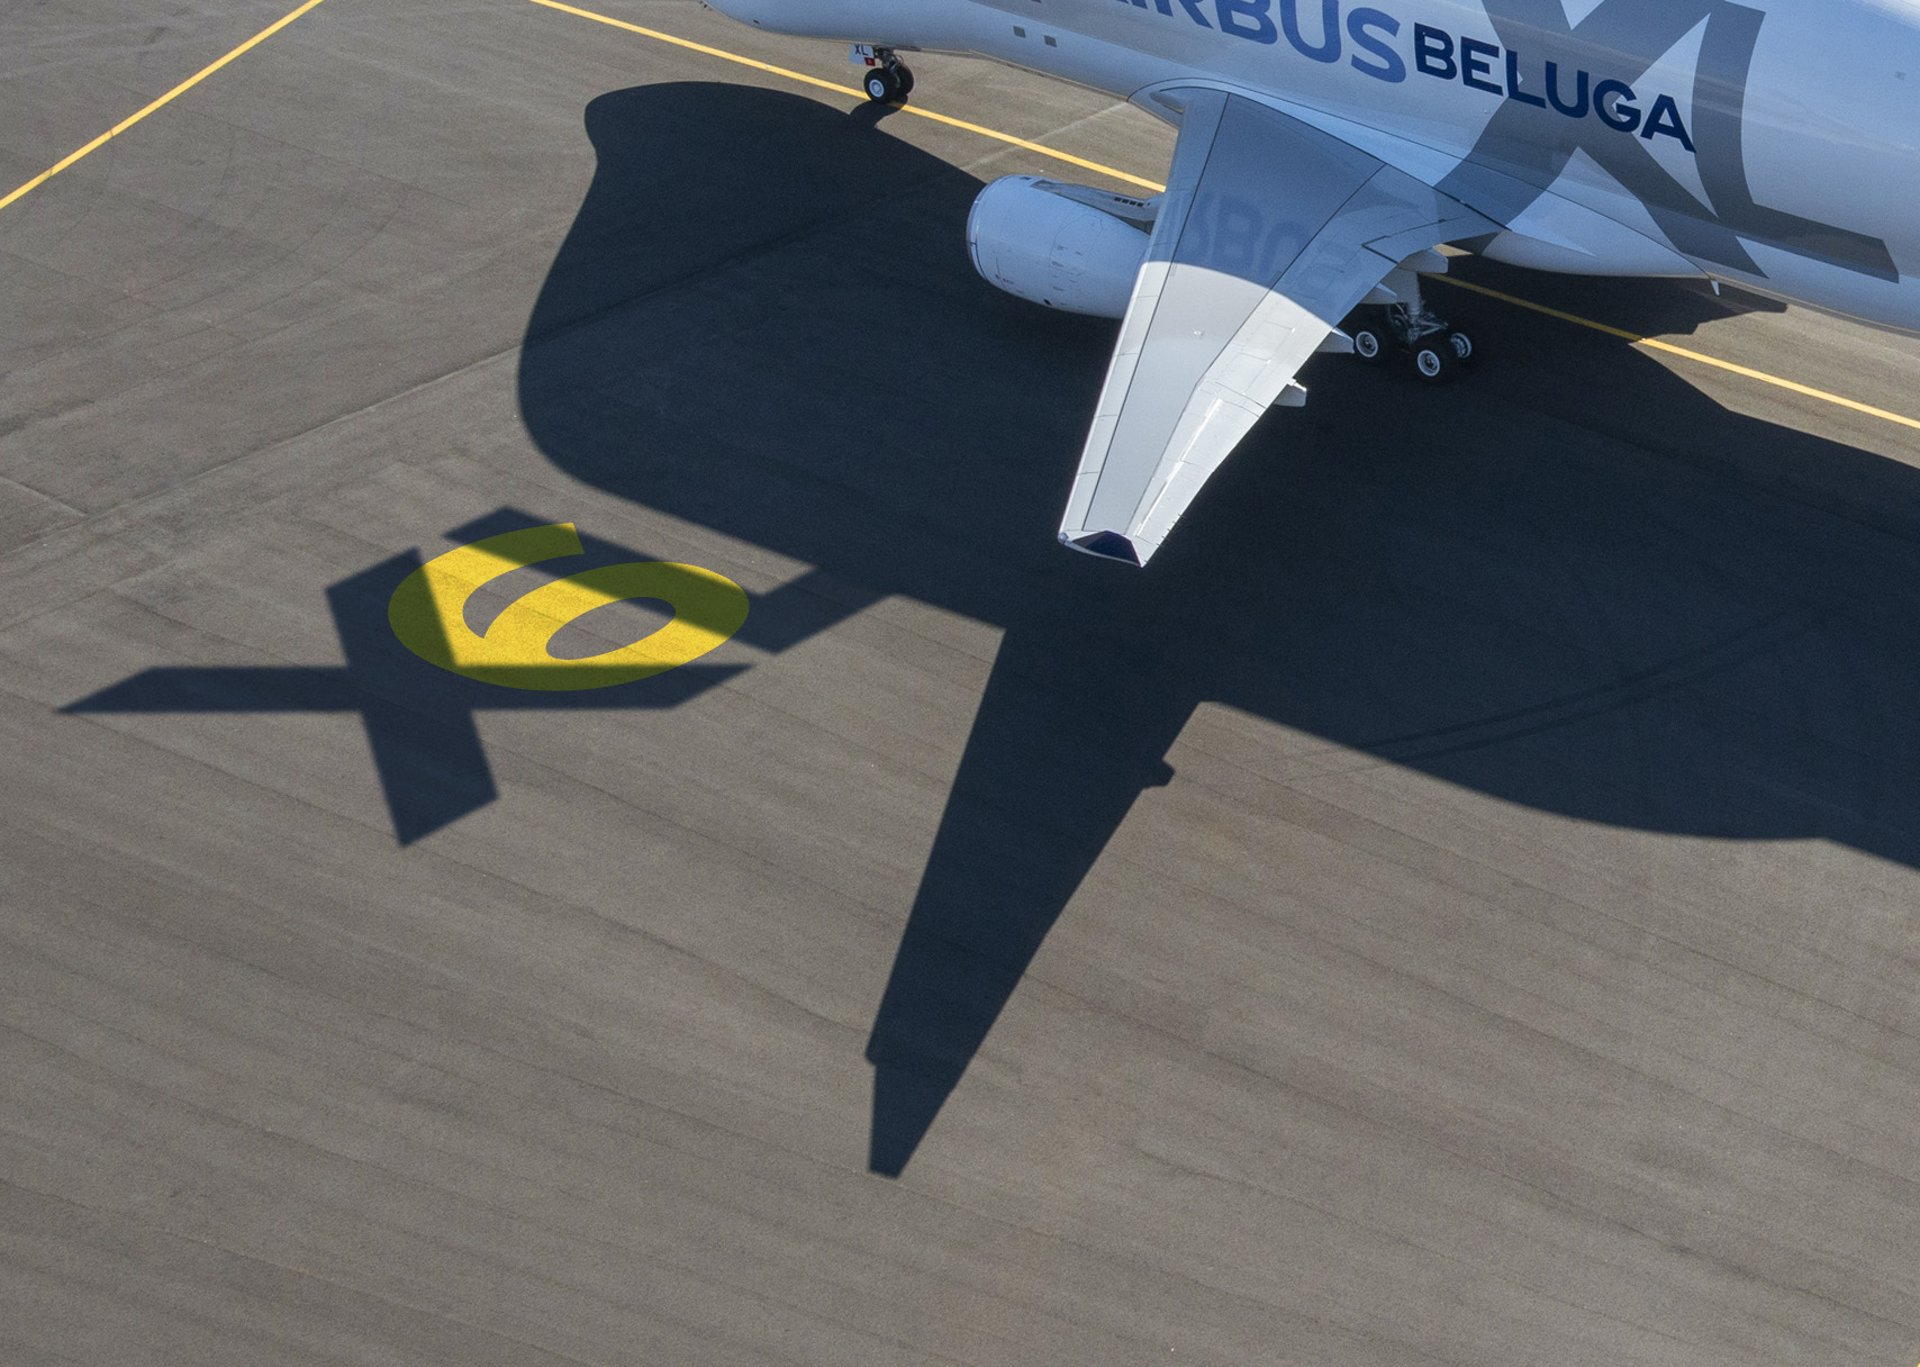 """58faba5ae4 Airbus  internal transport network takes an """"X-tra"""" step with the BelugaXL"""